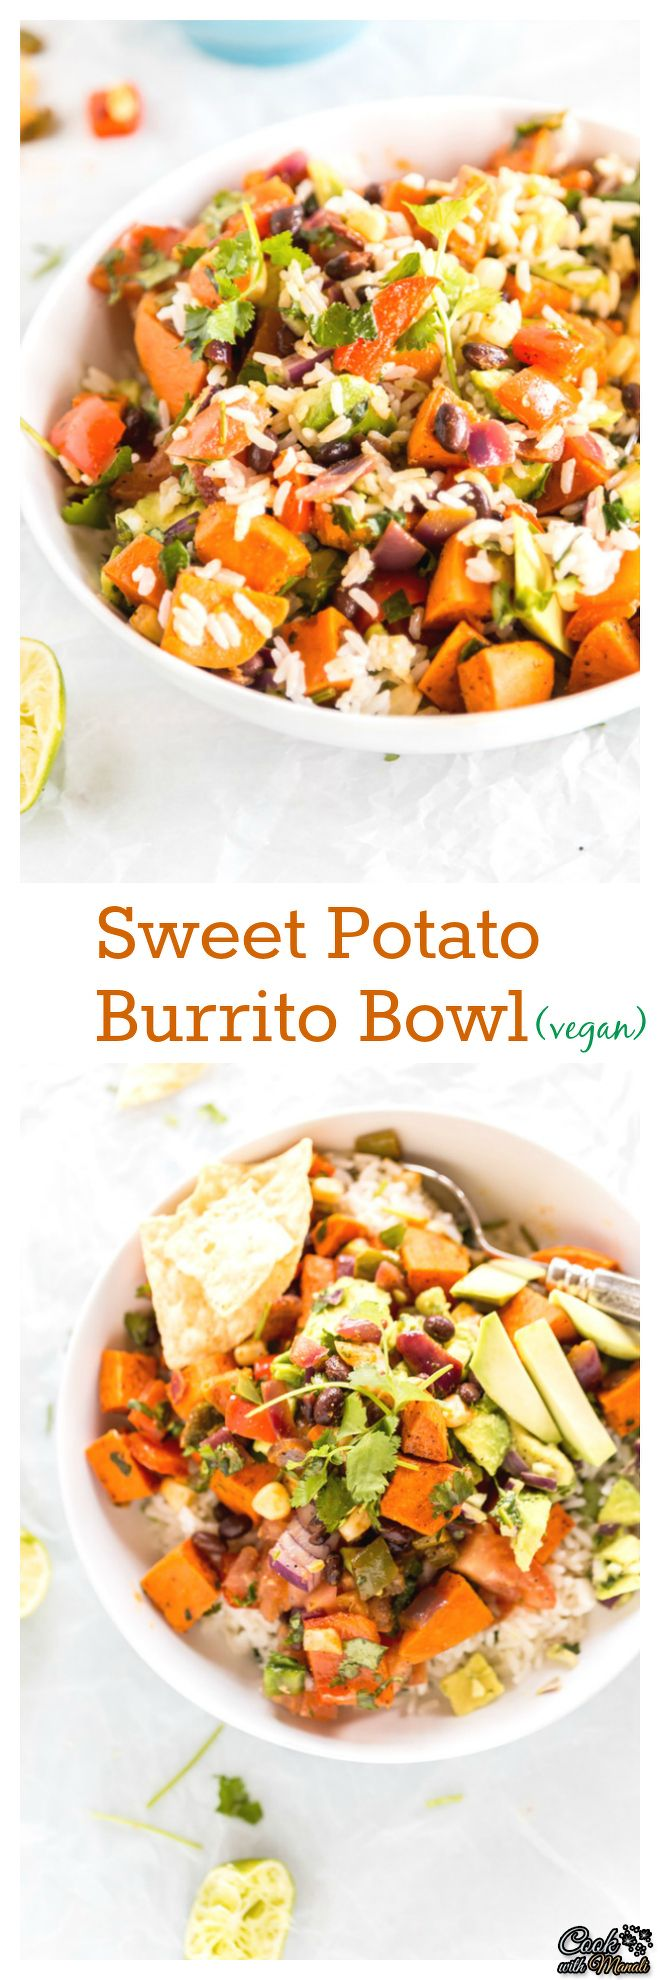 Burrito Bowl with spiced sweet potatoes, black beans, corn, red pepper ...